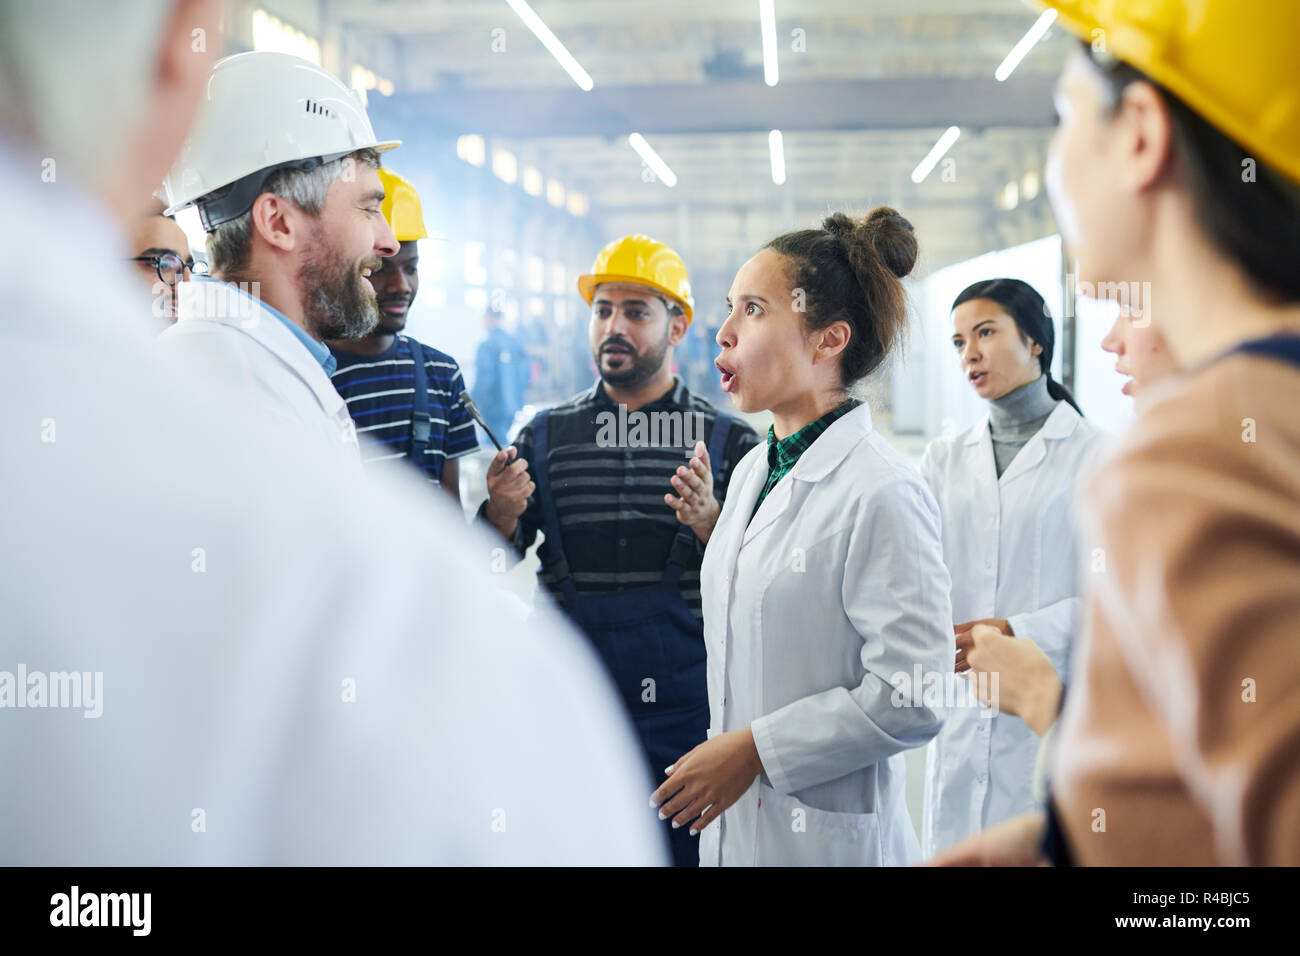 Angry Woman Shouting at Managers - Stock Image